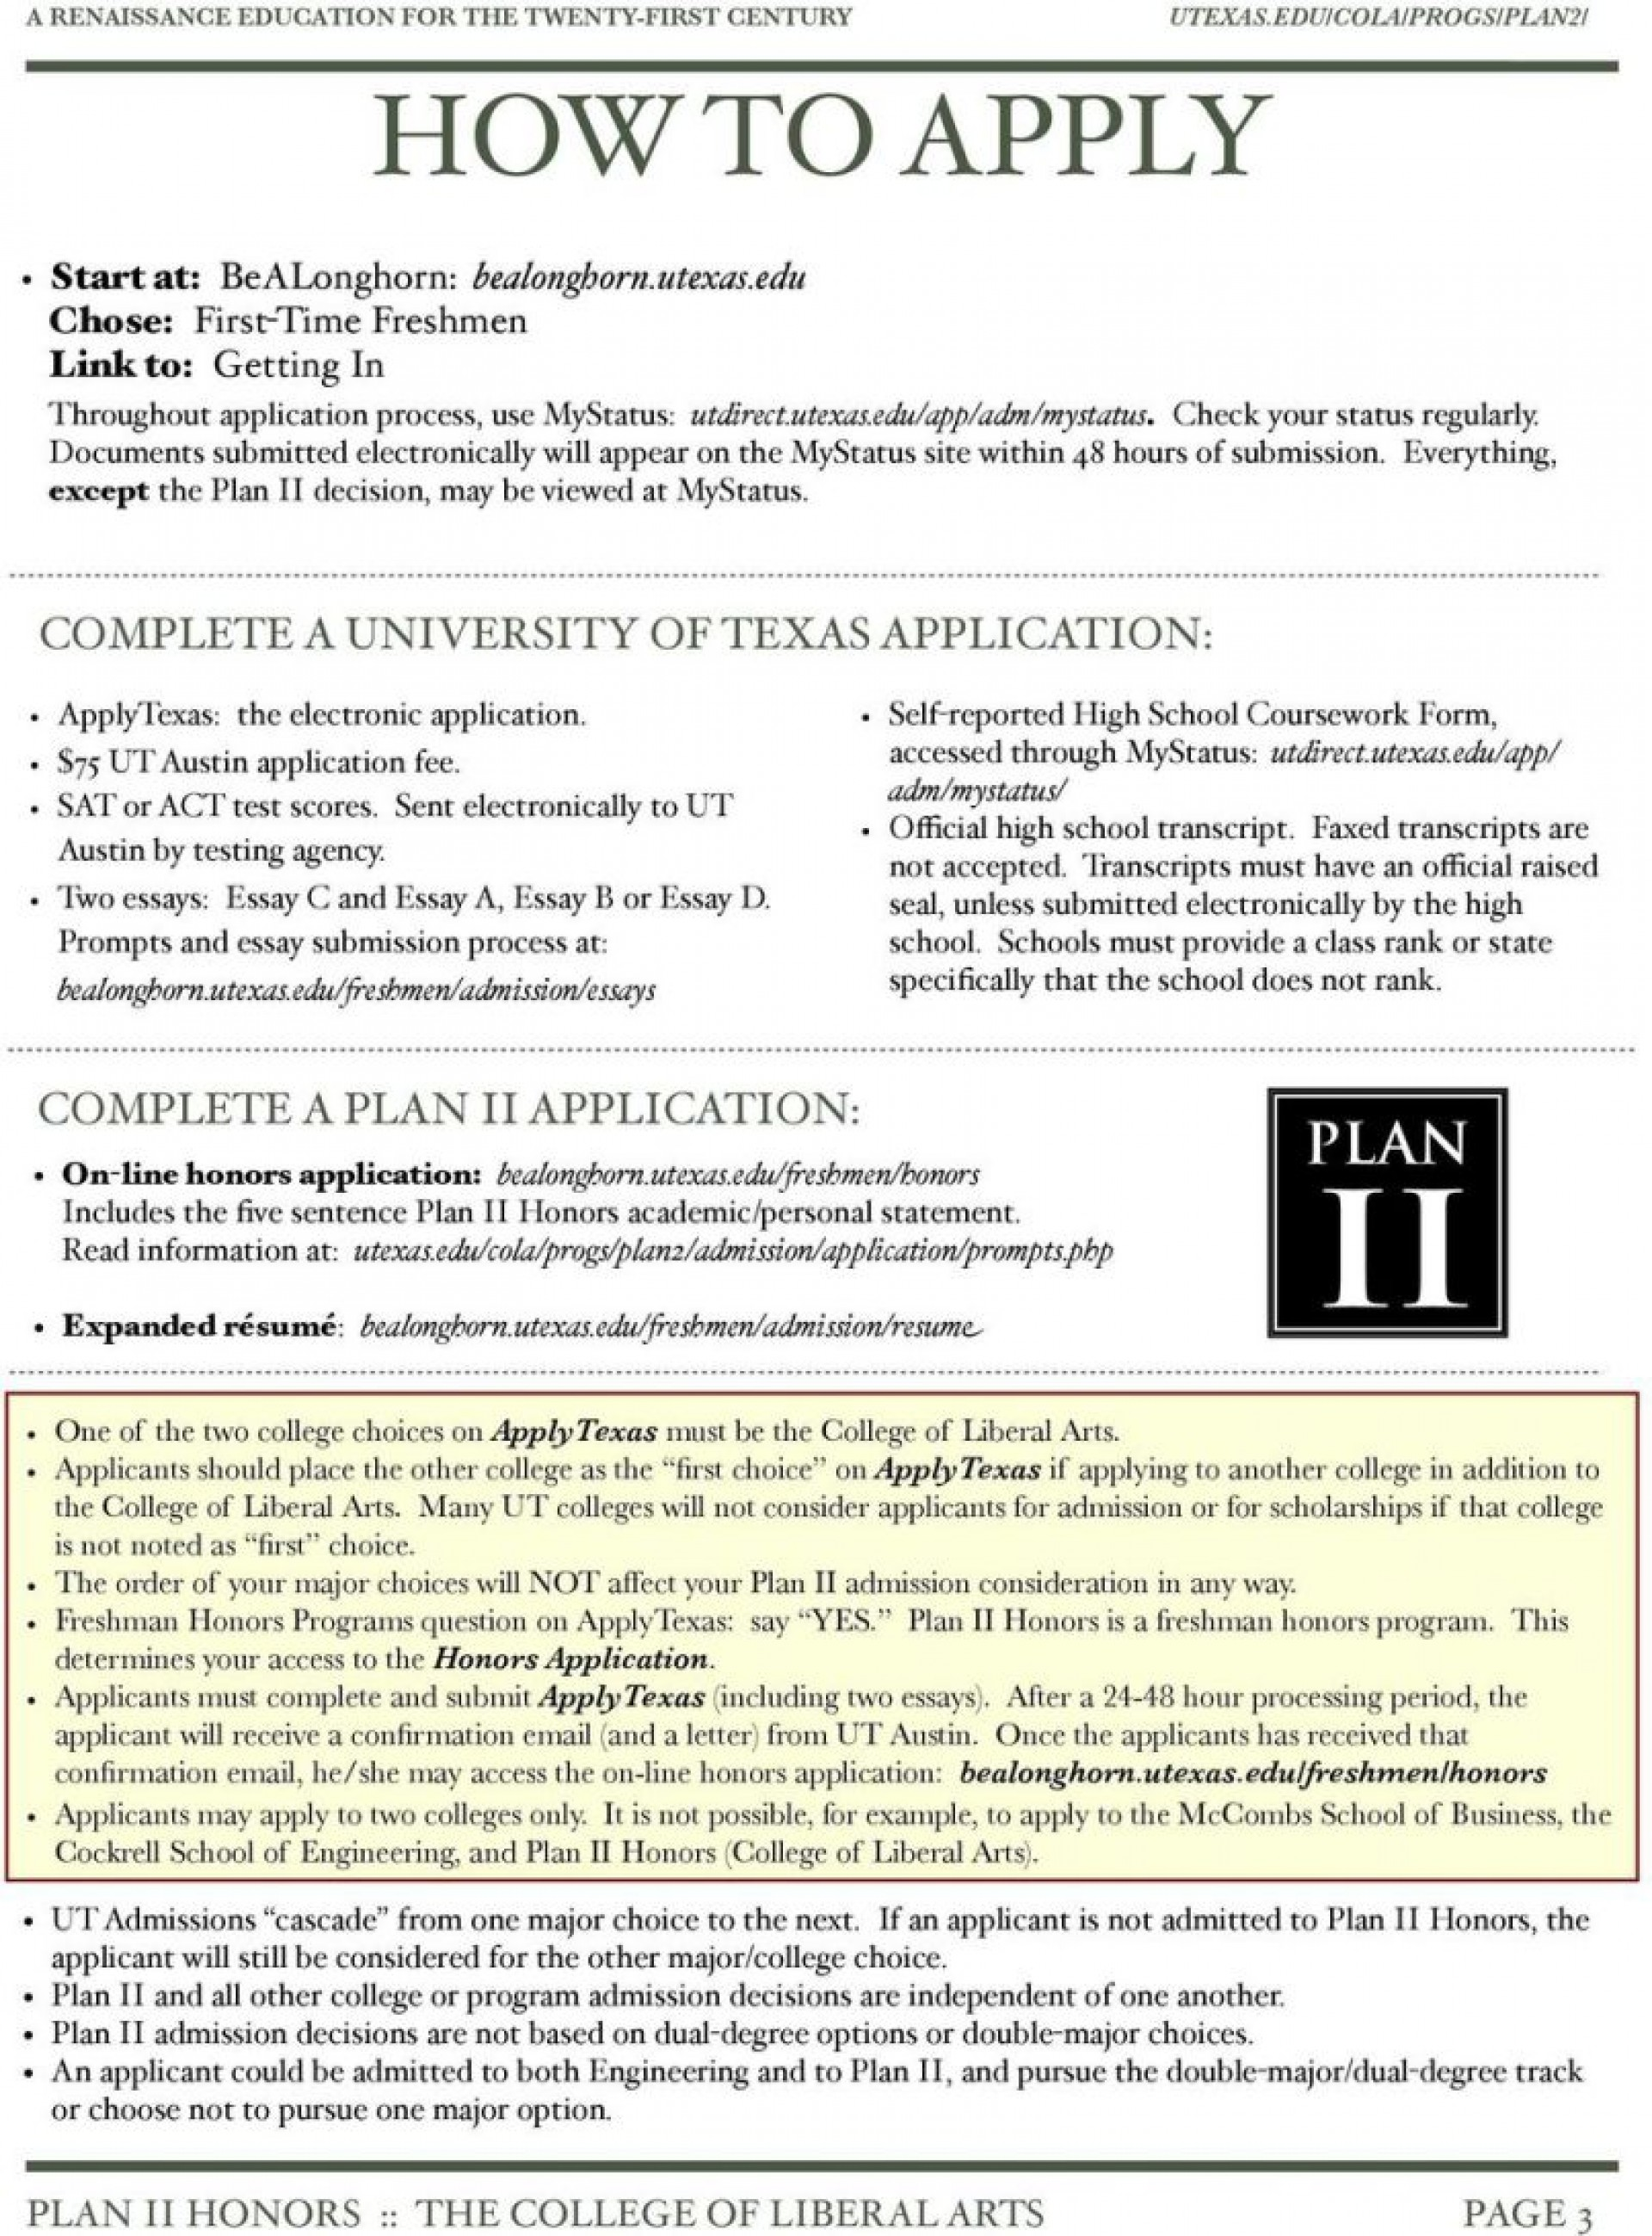 003 Applytexas Essay Prompts Poemdoc Or Apply Texas Topics P Fascinating B Examples A 2017 1920